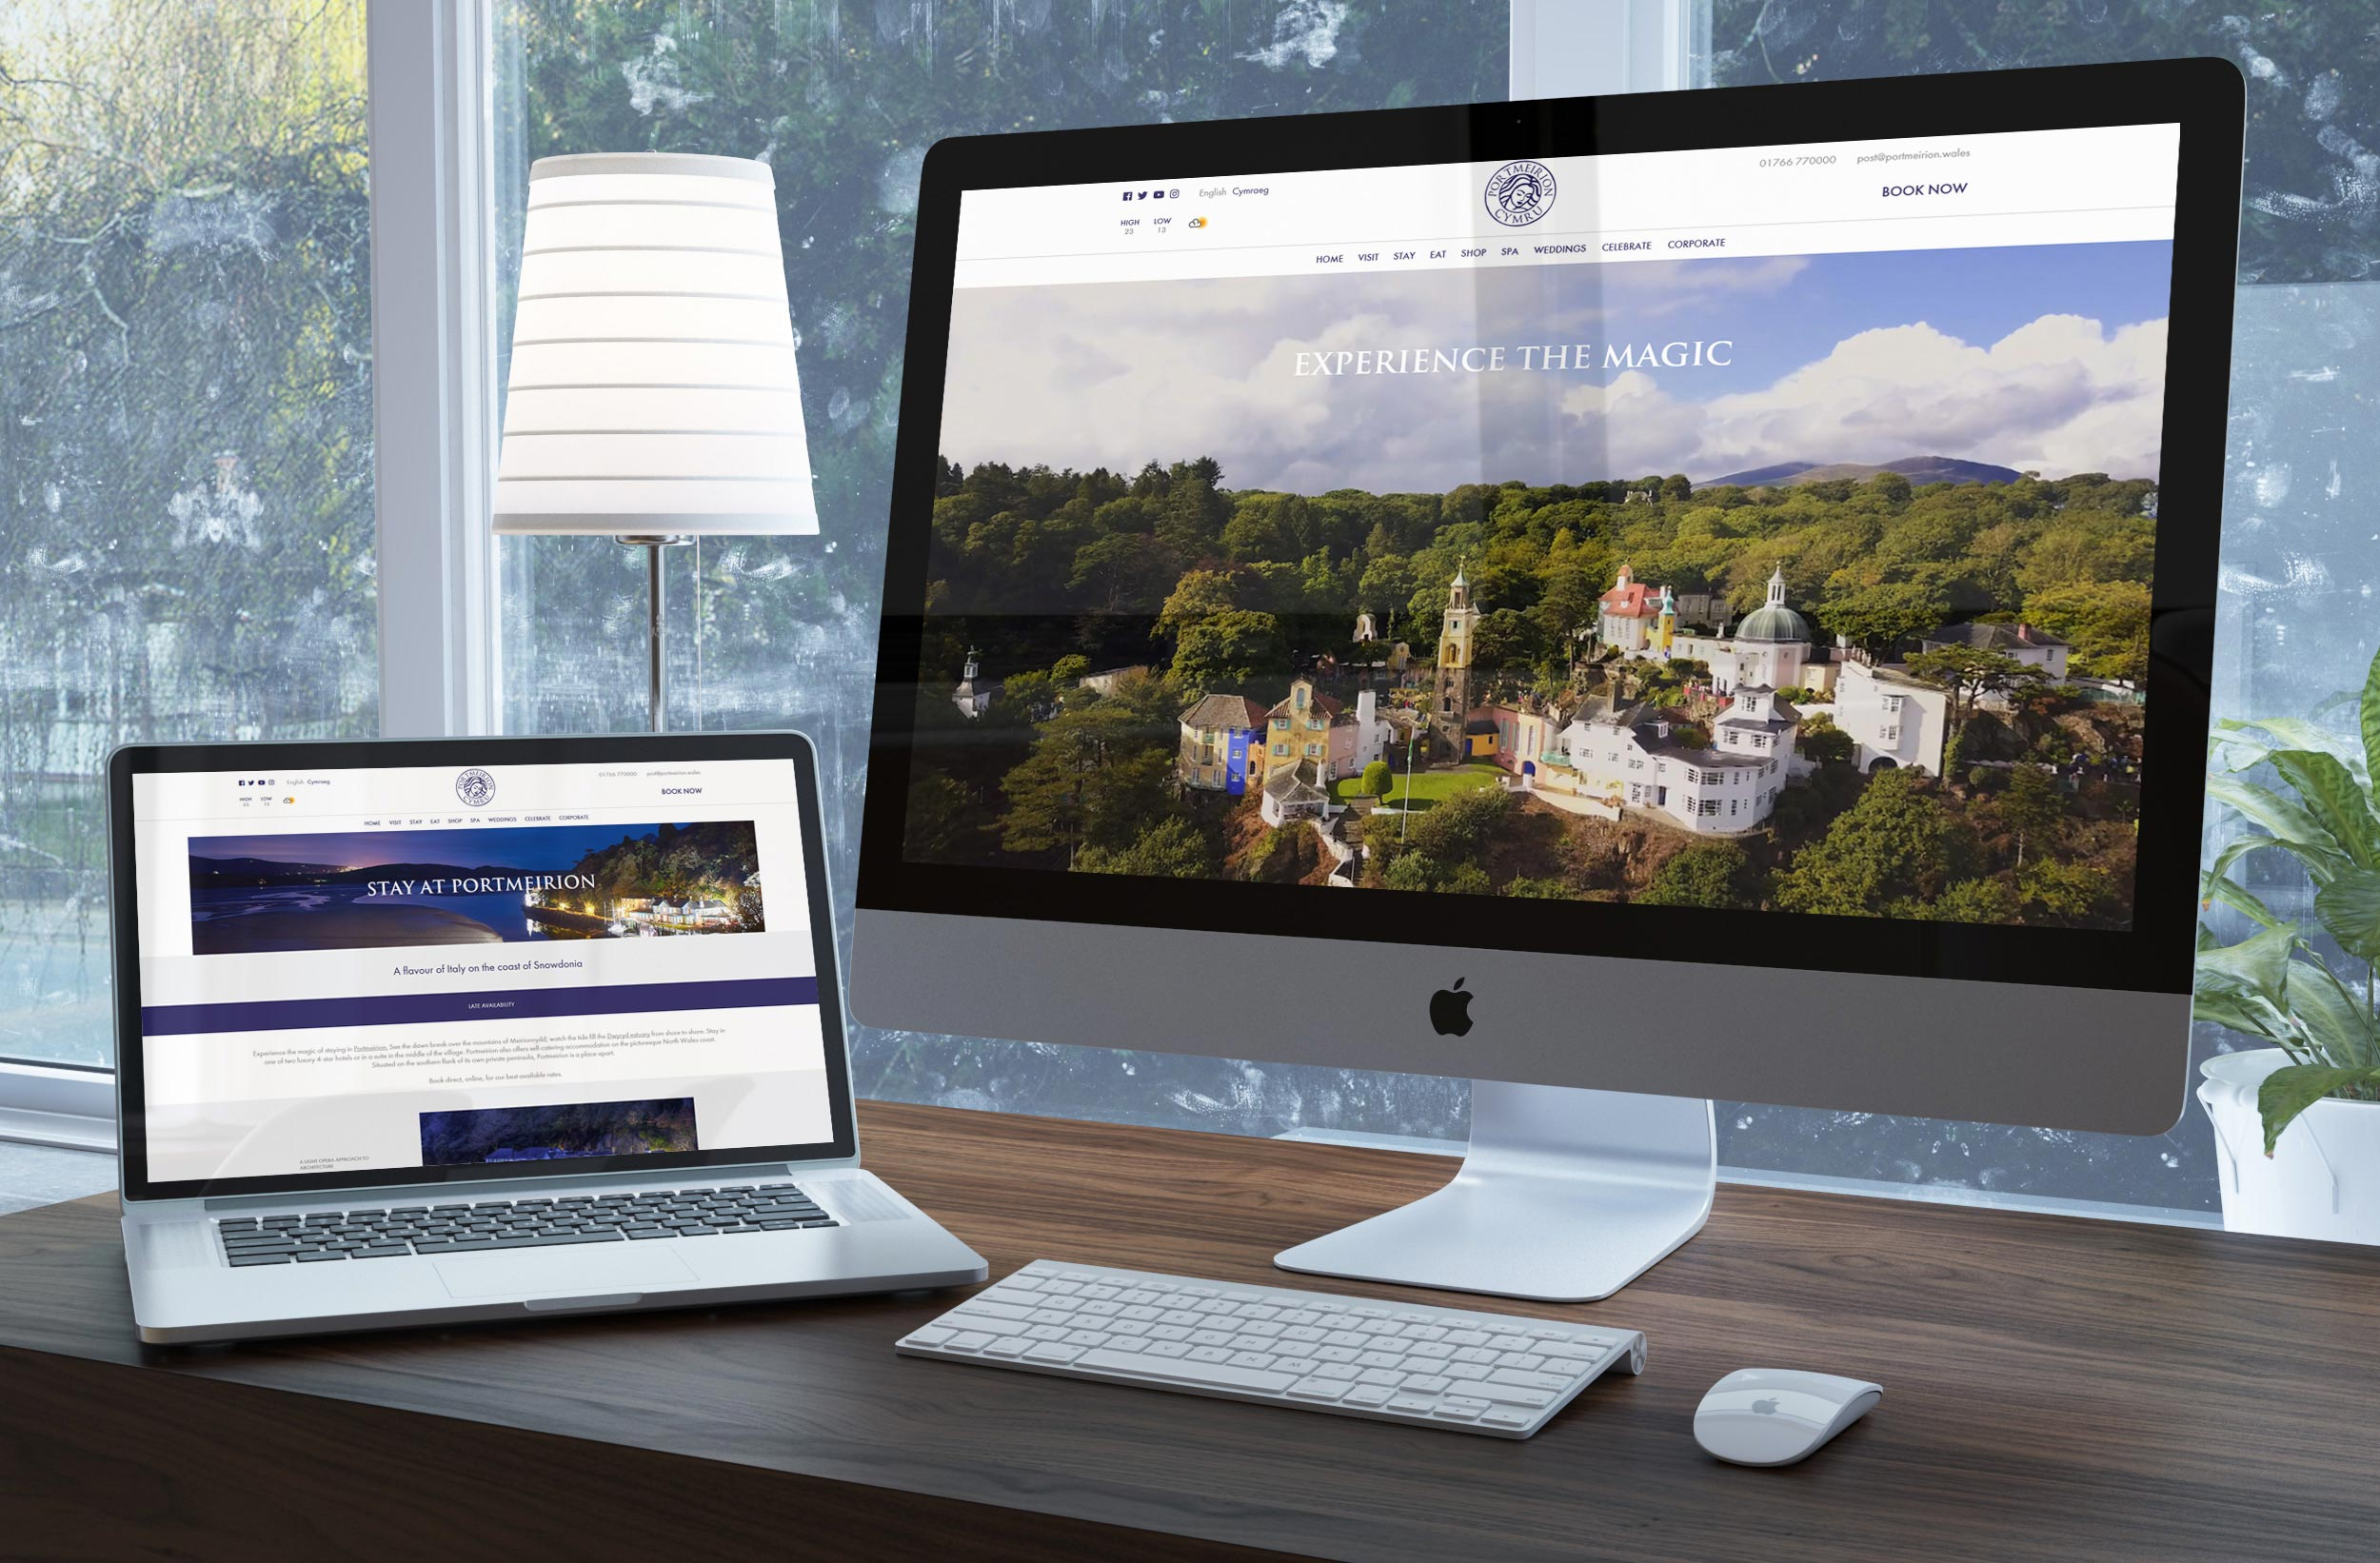 Web Development - Portmeirion